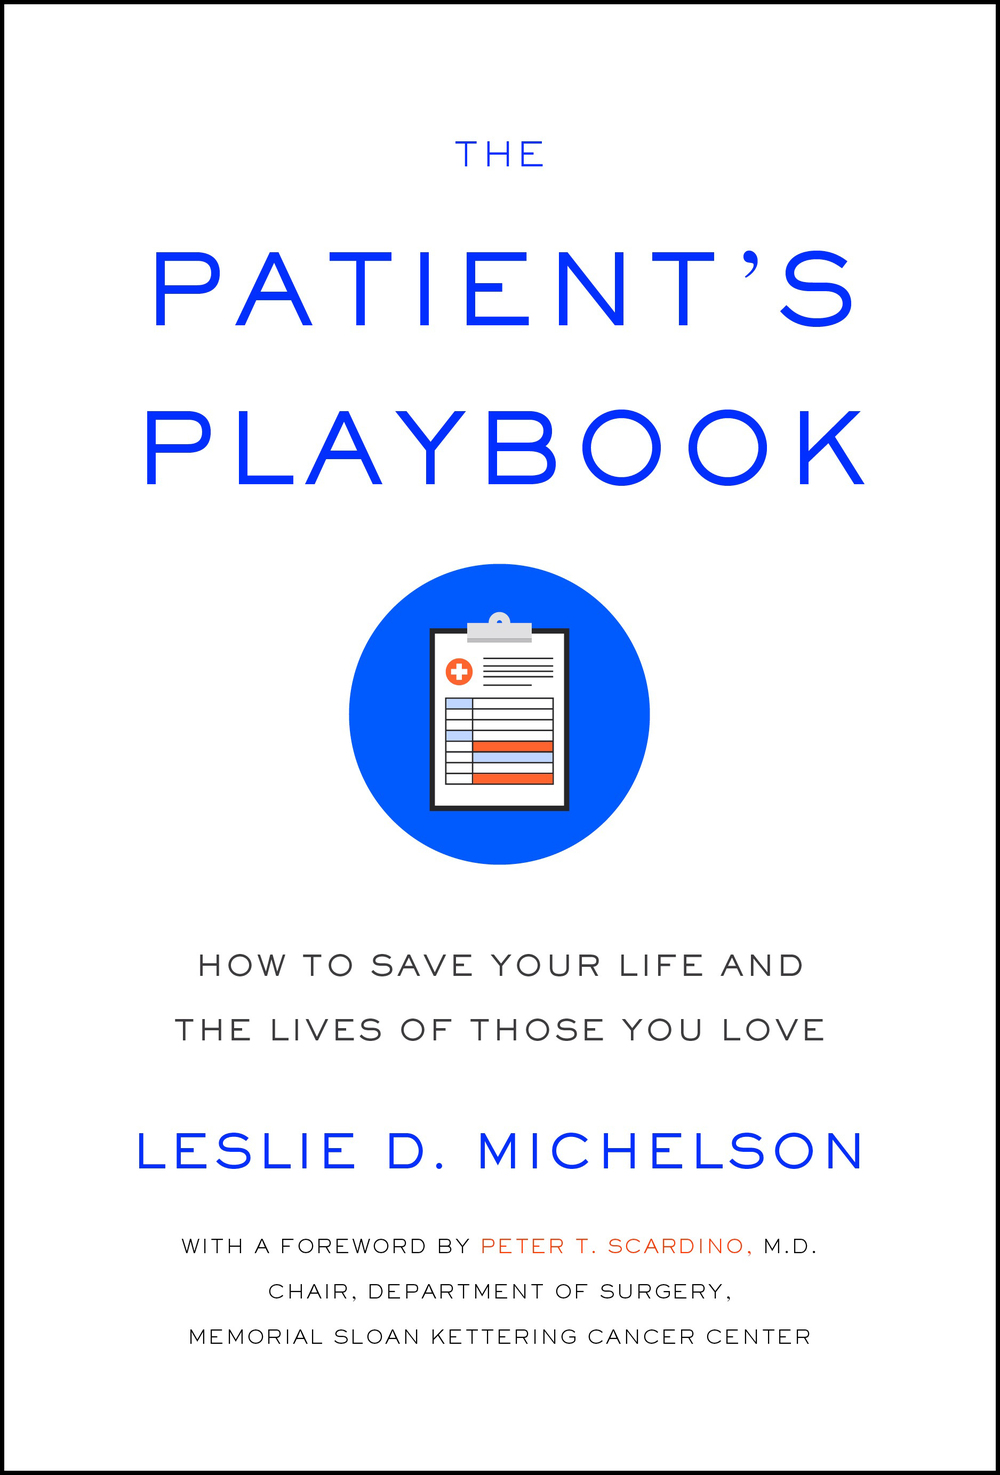 Patient's Playbook jacket with border.jpg